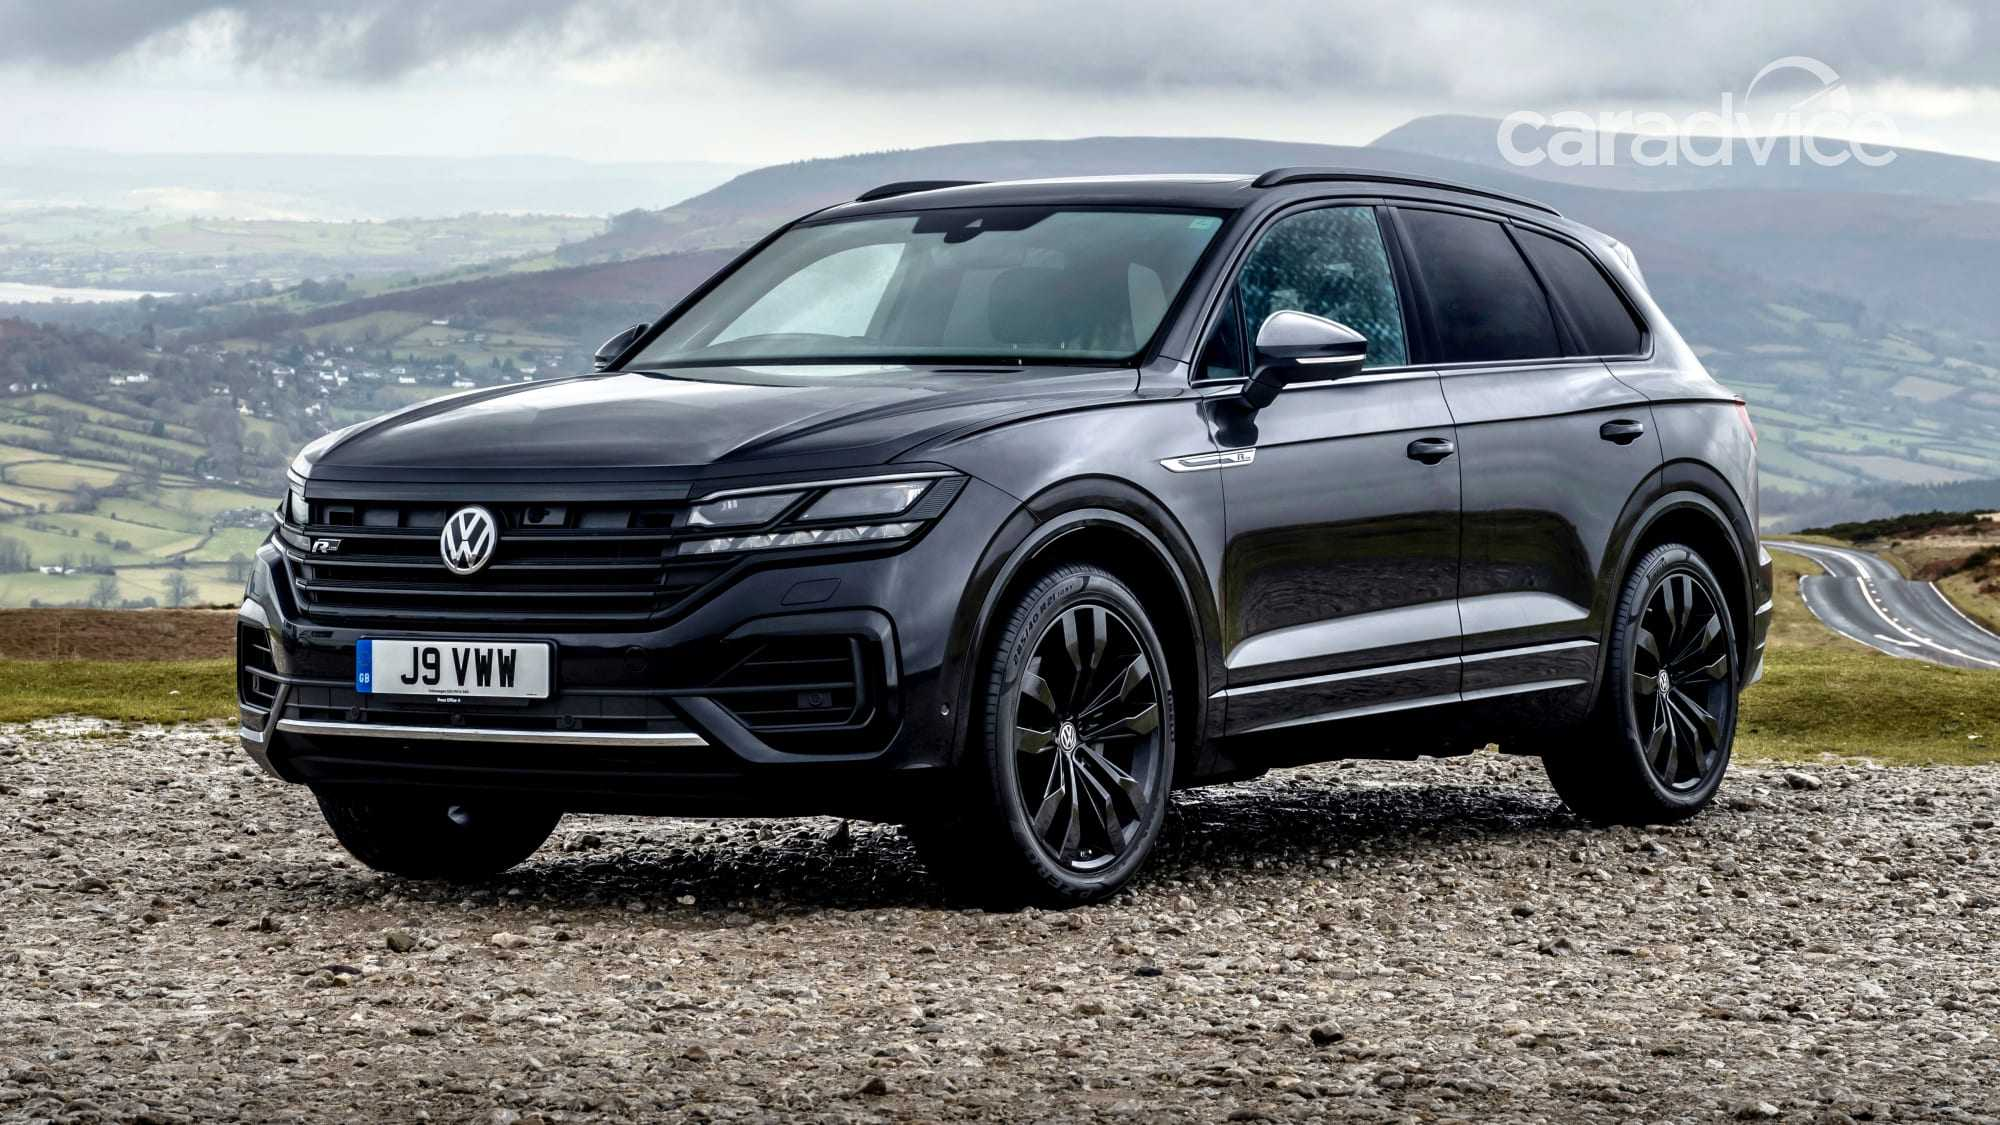 2021 Volkswagen Touareg Wolfsburg Will be a Limited Edition SUV